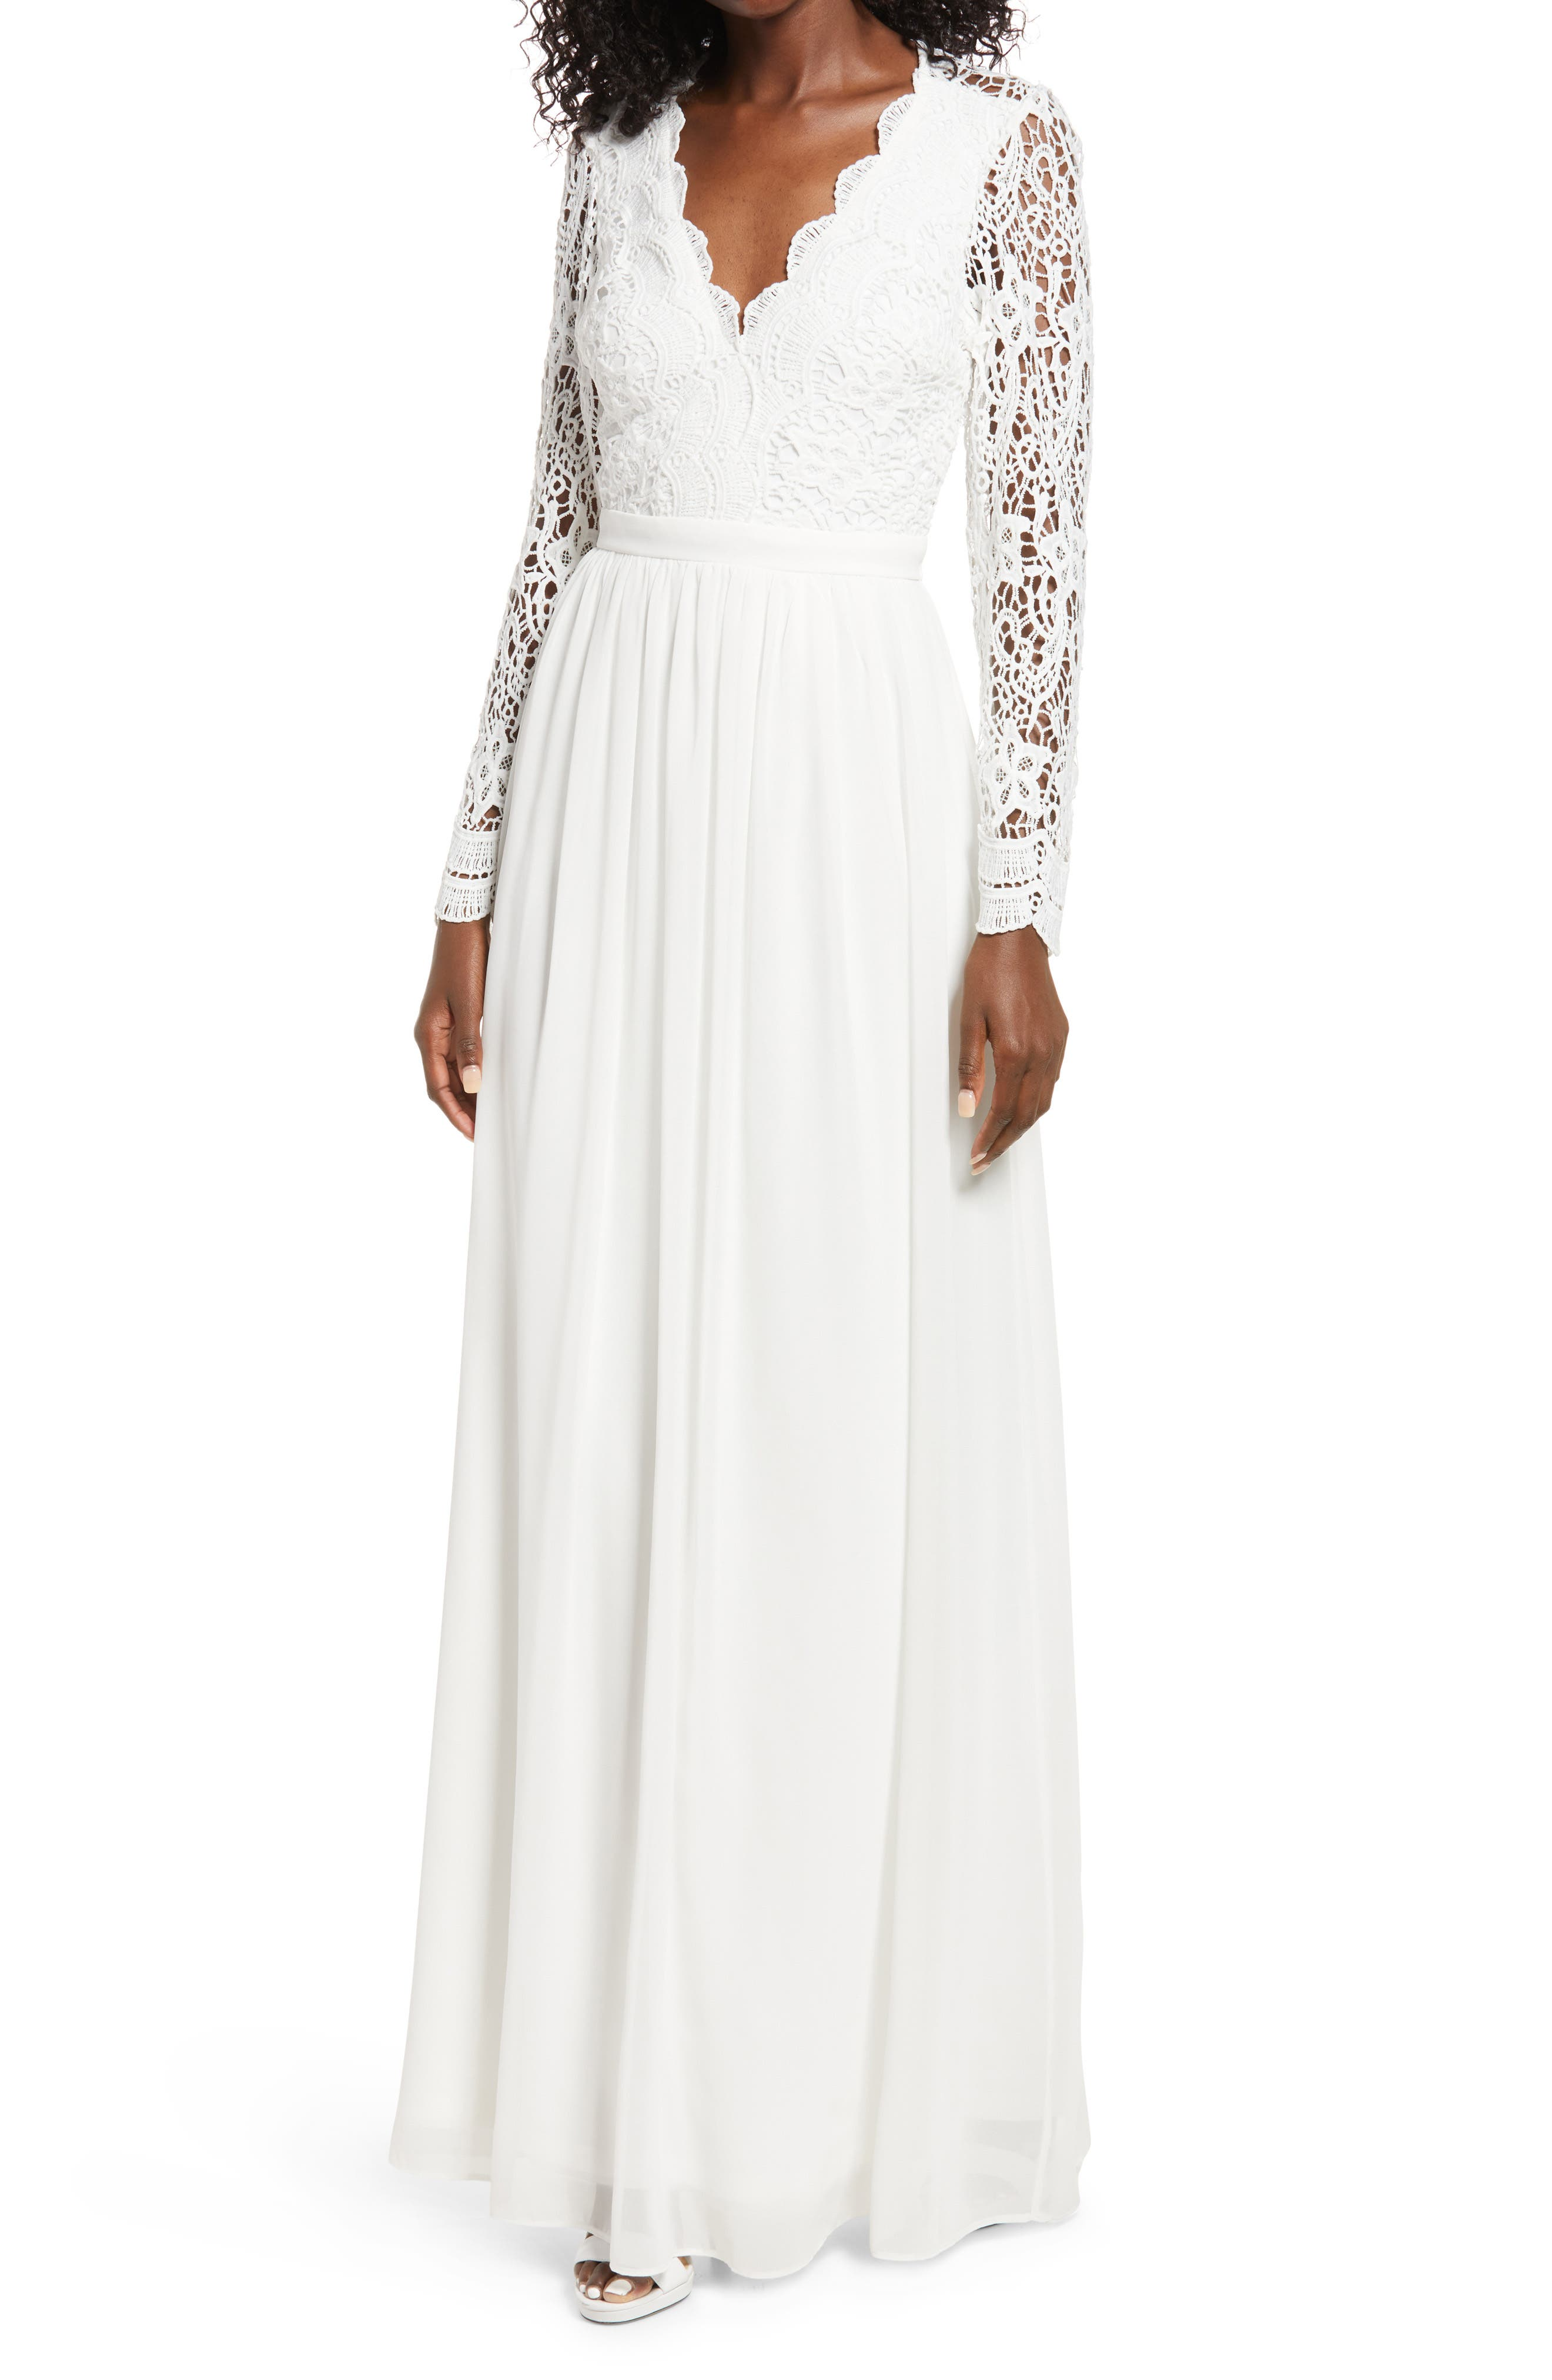 1940s Style Wedding Dresses | Classic Wedding Dresses Womens Lulus Awaken My Love Lace Bodice Long Sleeve Gown Size X-Small - White $88.00 AT vintagedancer.com